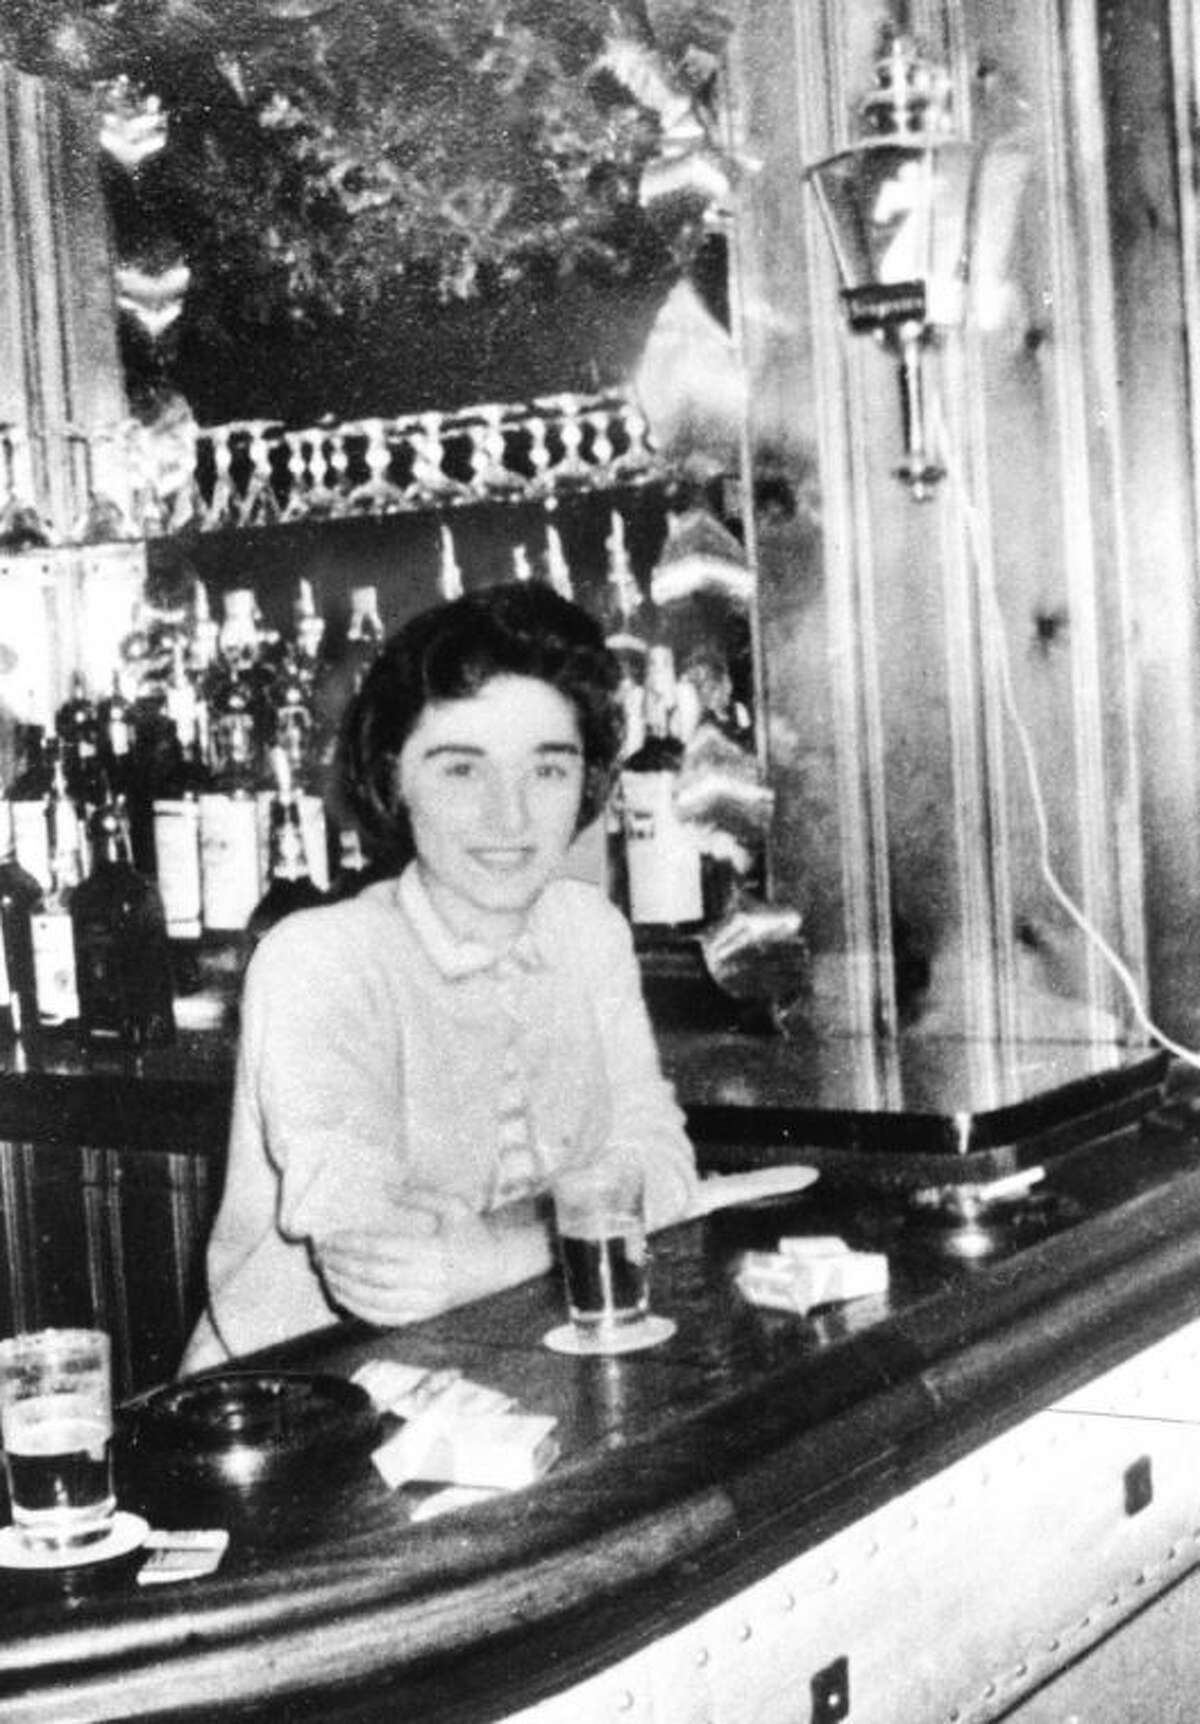 FILE- This undated file photo shows Kitty Genovese, whose screams could not save her the night she was stalked and killed in her Queens neighborhood in New York 50 years ago. Gruesome enough in its bare re-telling, Genovese?'s fatal stabbing at the hands of Winston Moseley on March 13, 1964, gained mythic status when The New York Times reported that 38 people witnessed the attack and did not call the police until it was too late. (AP Photo/New York Daily News, File) NO SALES MAGS OUT, NYC OUT